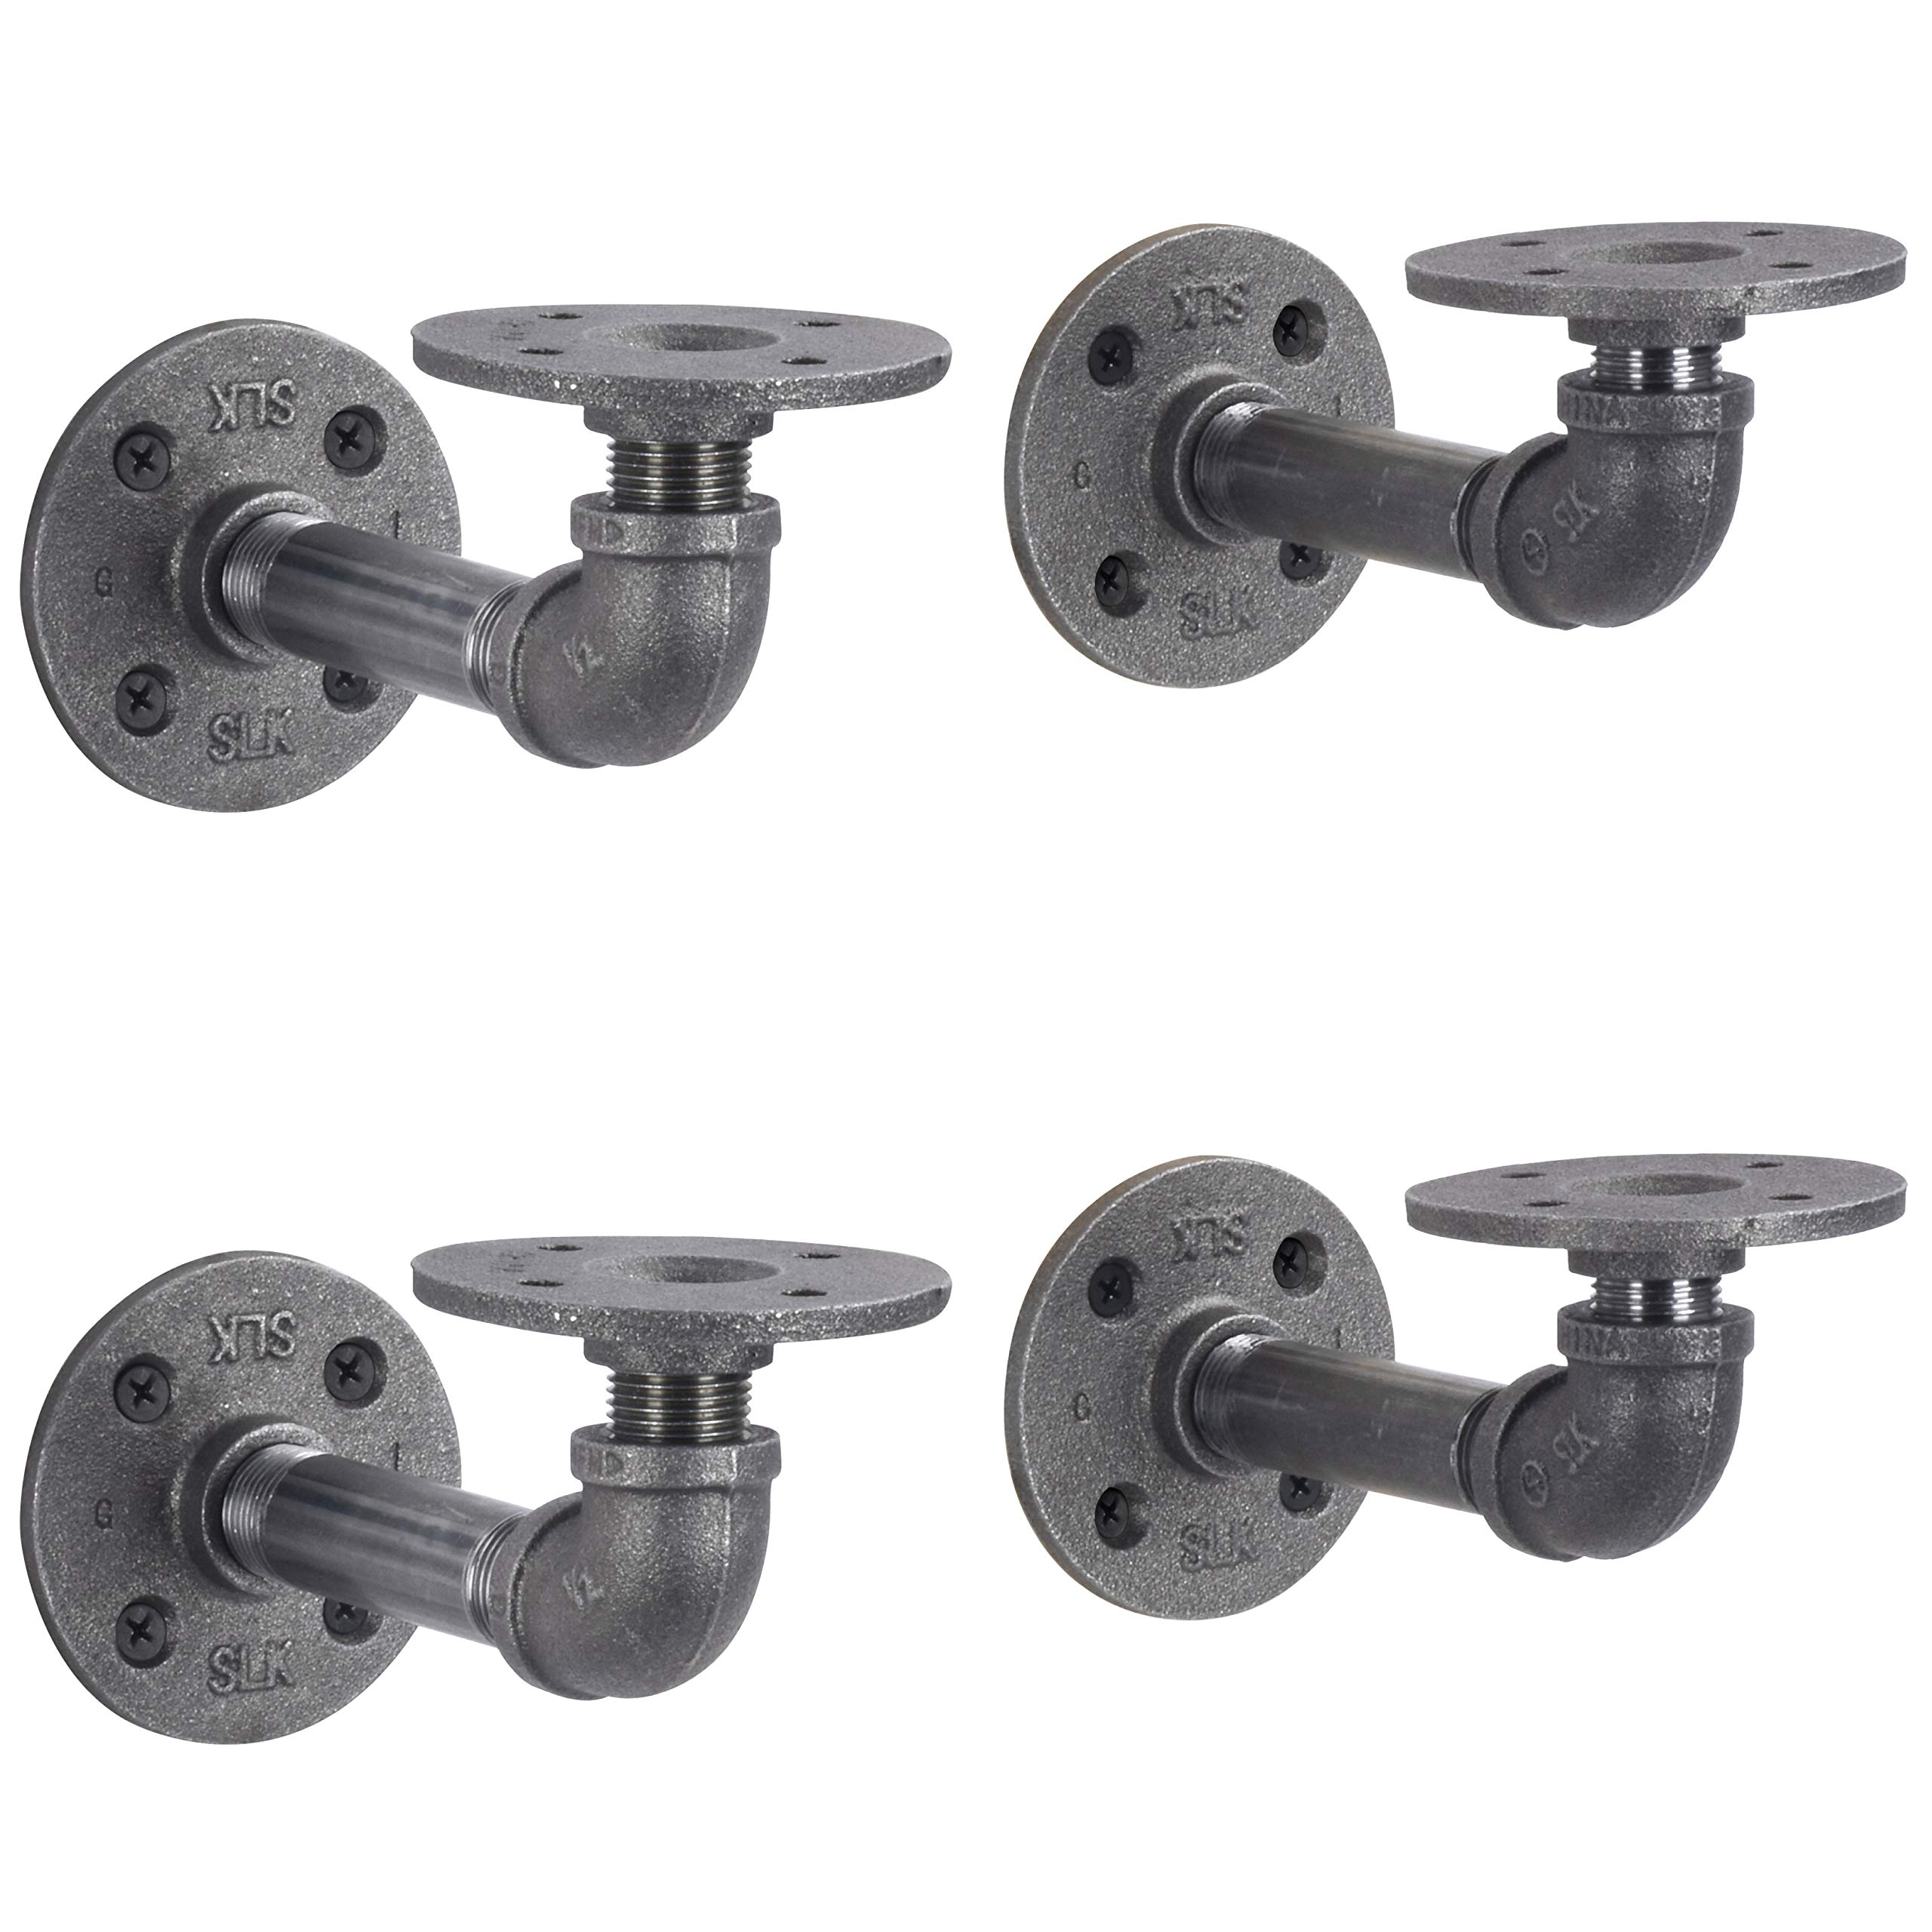 Rustic Pipe Decor Industrial Shelf Brackets – Double Flange Bracket Set of Four, Iron Metal Grey Black Fittings, Custom DIY Floating Shelves, Vintage Furniture Decorations, Wall Mounted (4 Inch Pipe) by PIPE DÉCOR (Image #1)